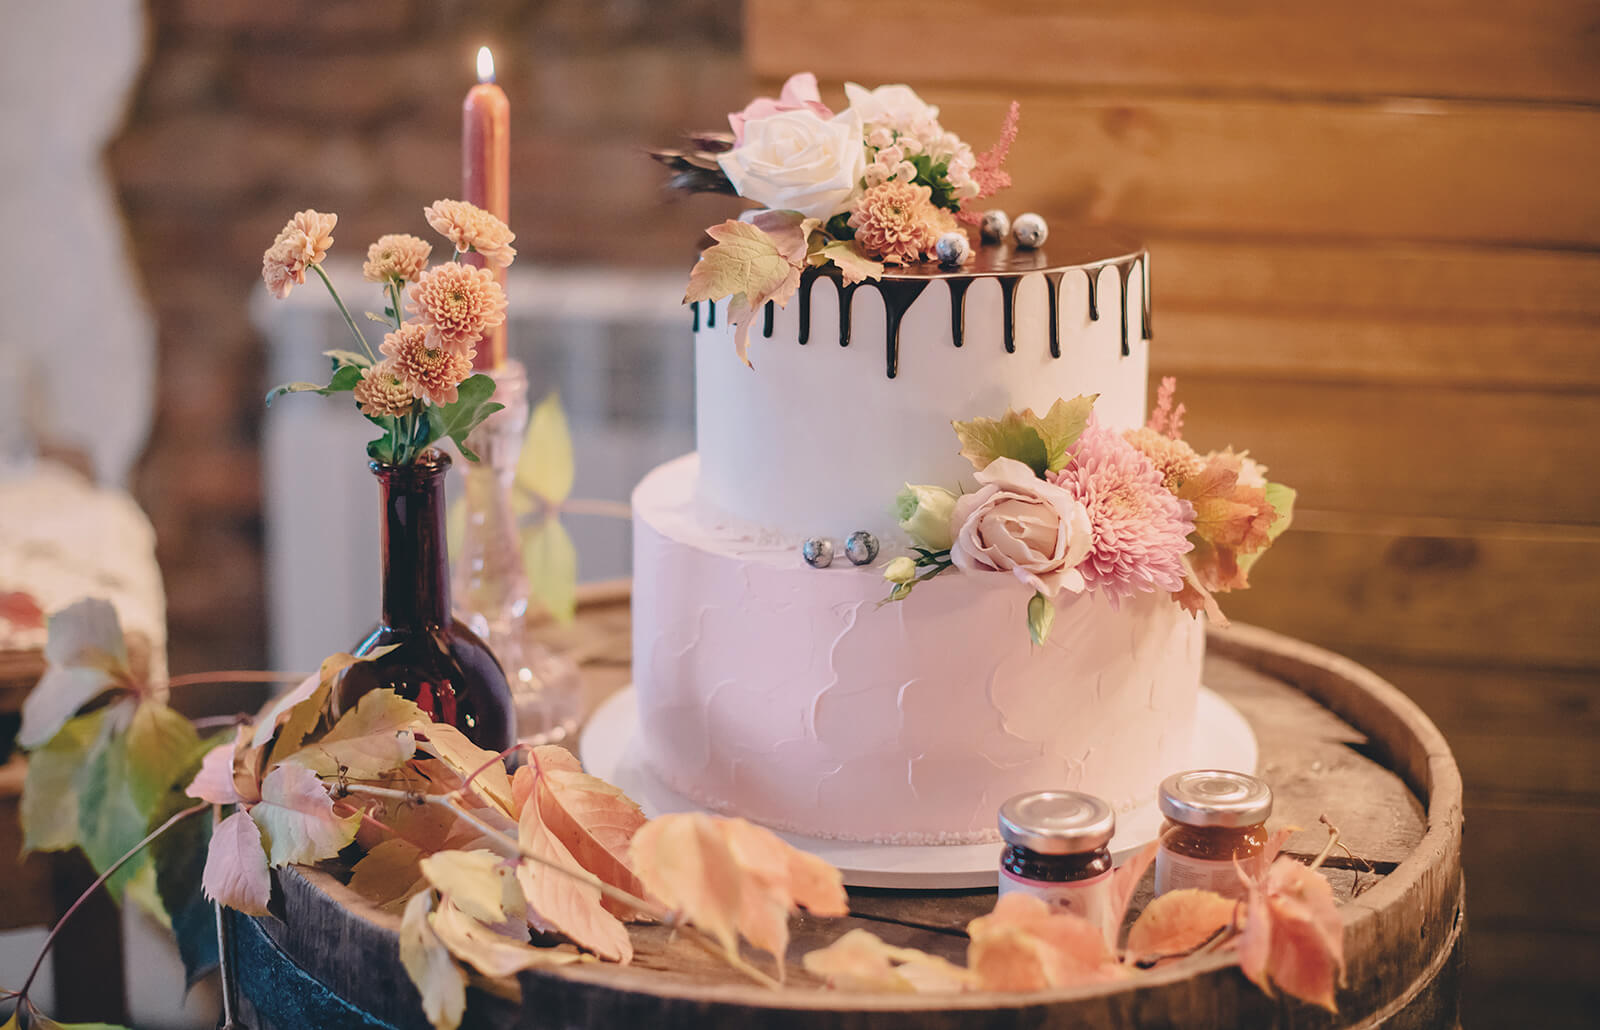 How to Decorate Fall Wedding Cakes | LoveToKnow